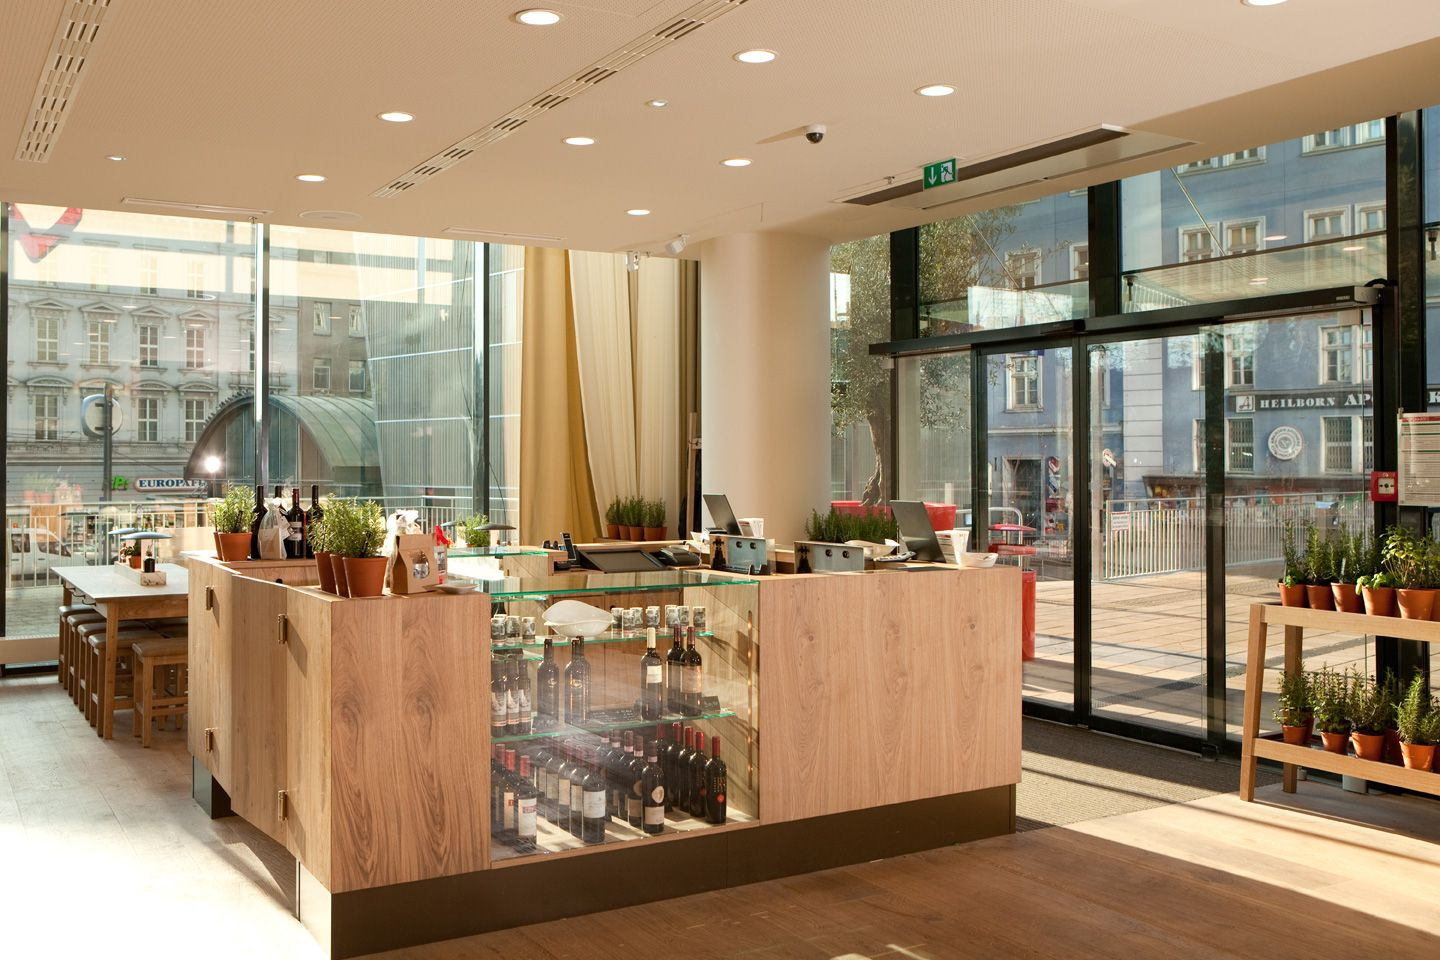 Restaurant Wohnzimmer Thun The New Design Cashier Vapiano Designed By Matteo